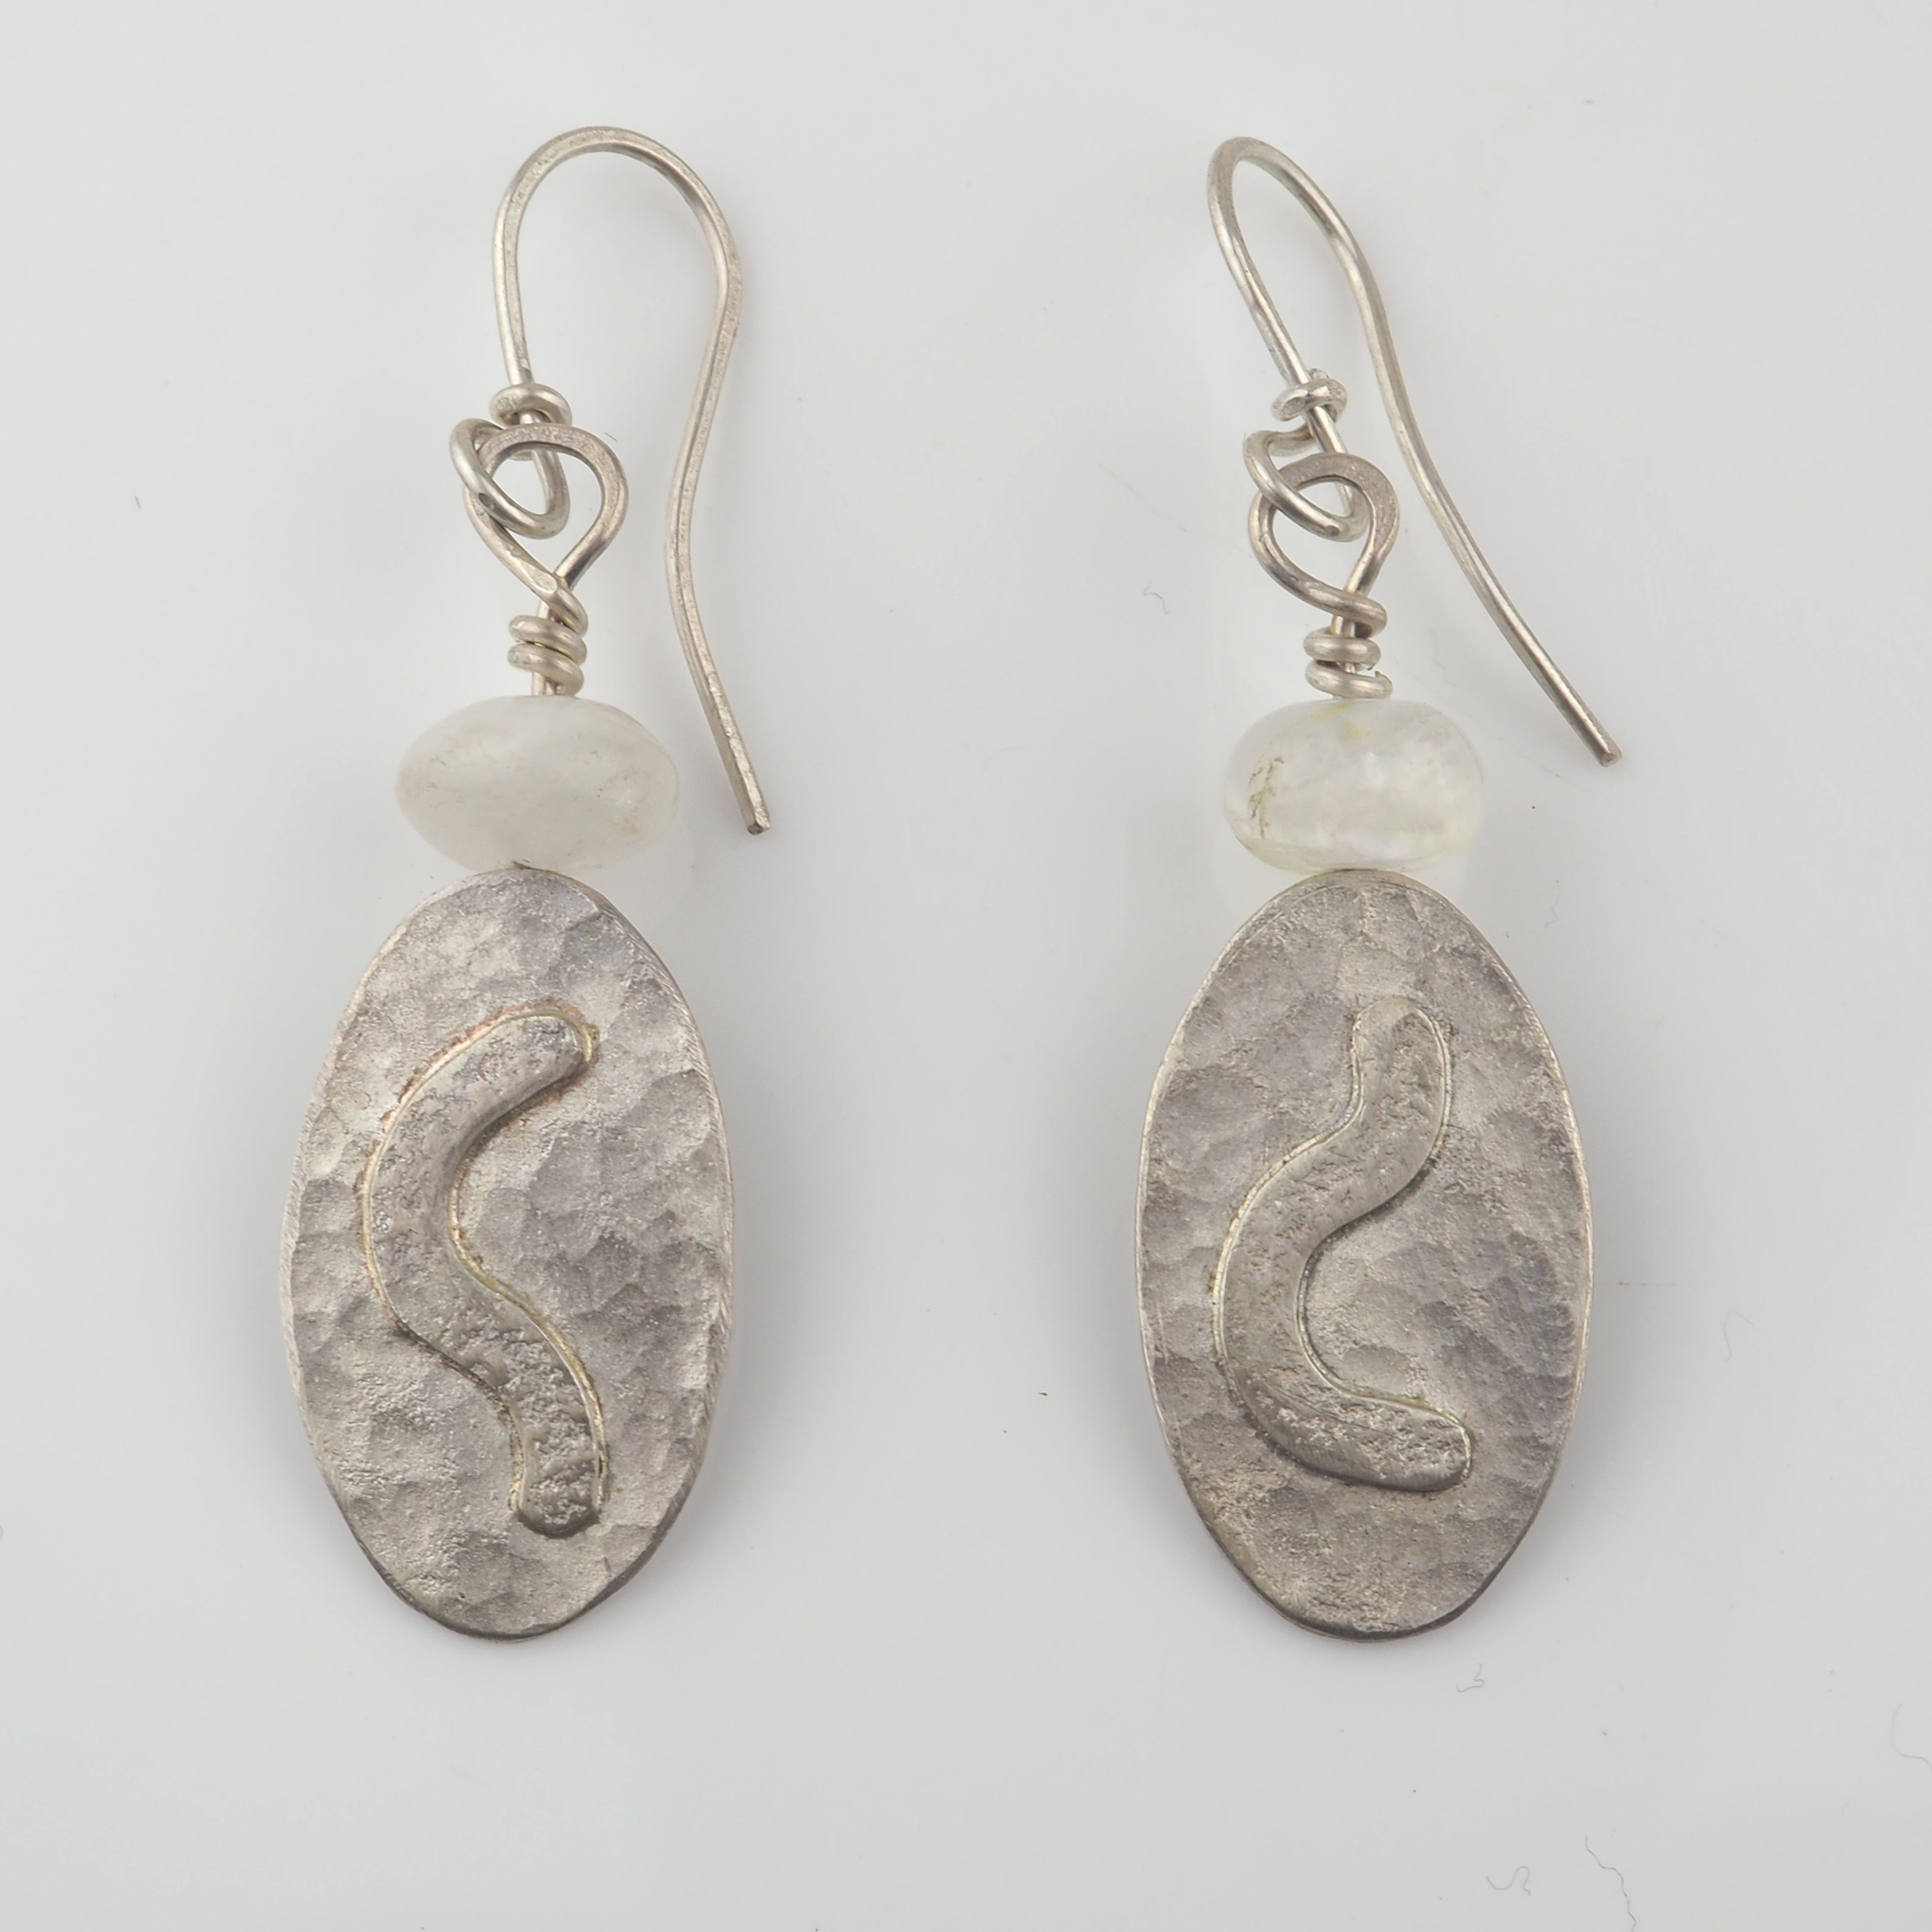 Moonstone and Silver Earrings | Duibhne Gough | Primavera Gallery